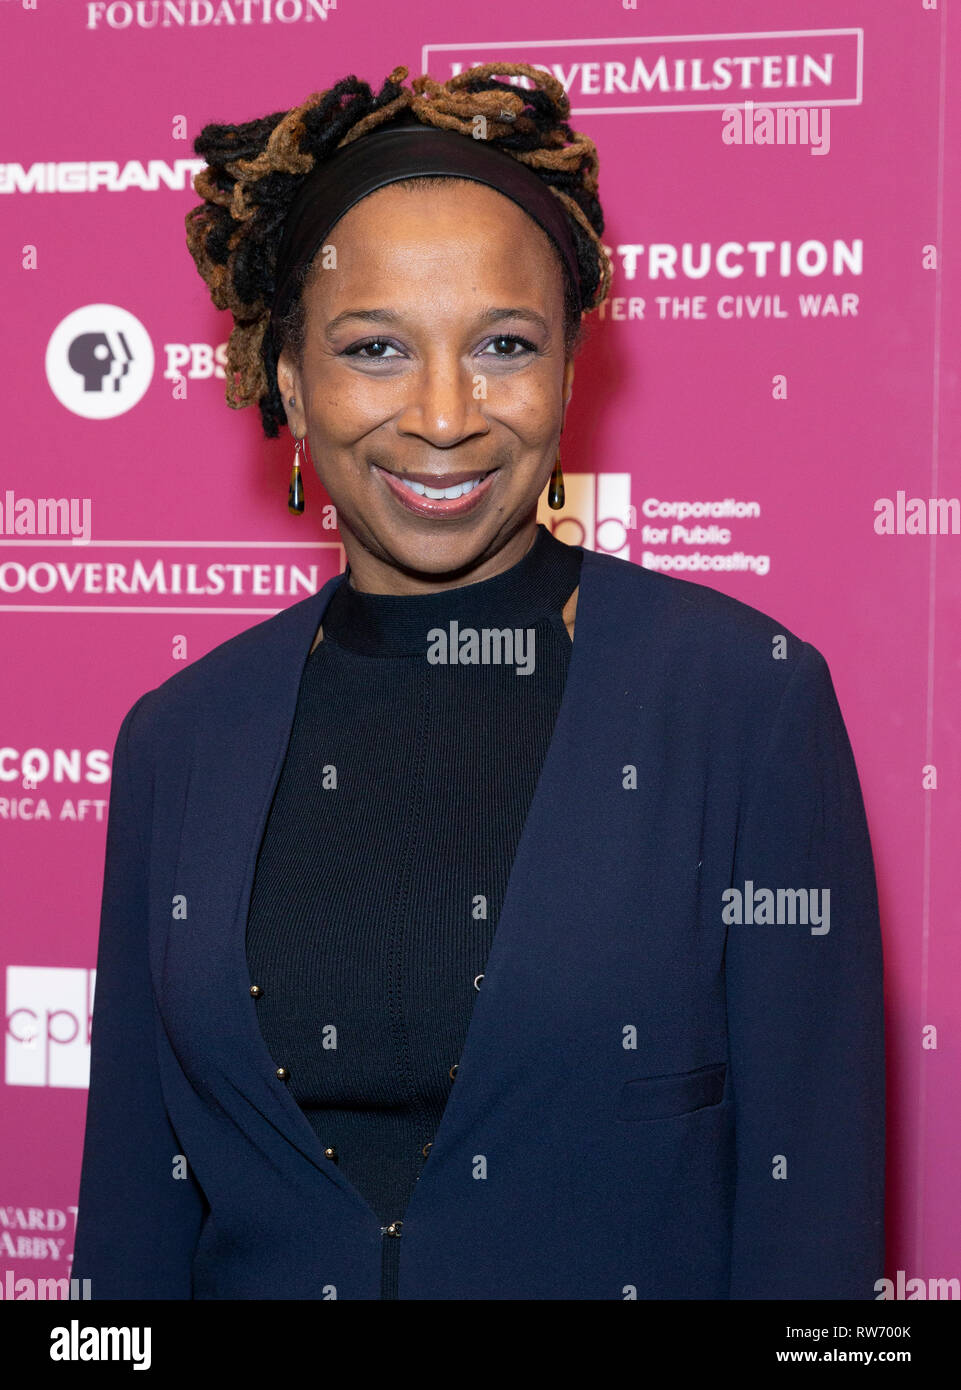 New York, NY - March 4, 2019: Kimberly Crenshaw attends the Reconstruction: America After The Civil War premiere at New York Historical Society - Stock Image